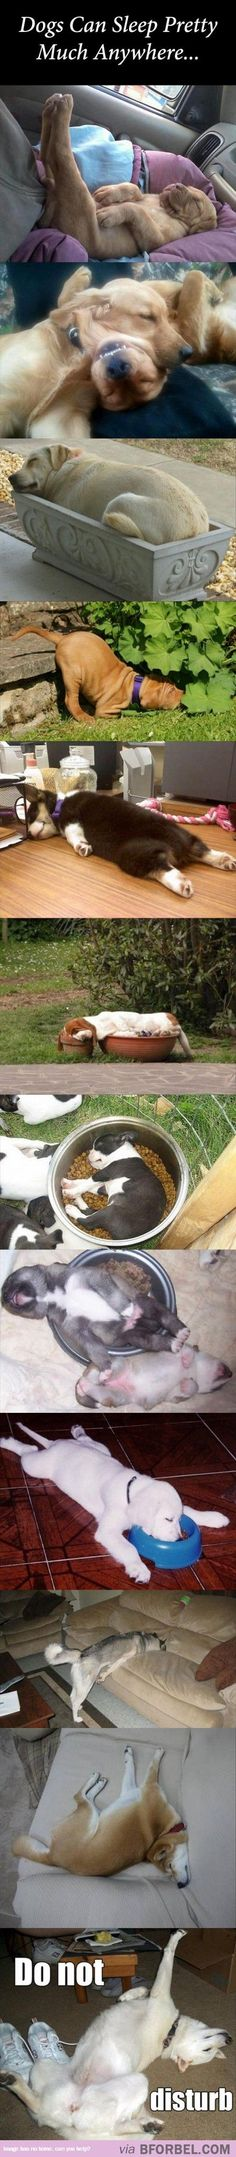 Oh my goodness, the one in the planter! My childhood best friend (dog), Brownie, ALWAYS slept in a planter just like that one! ❤️